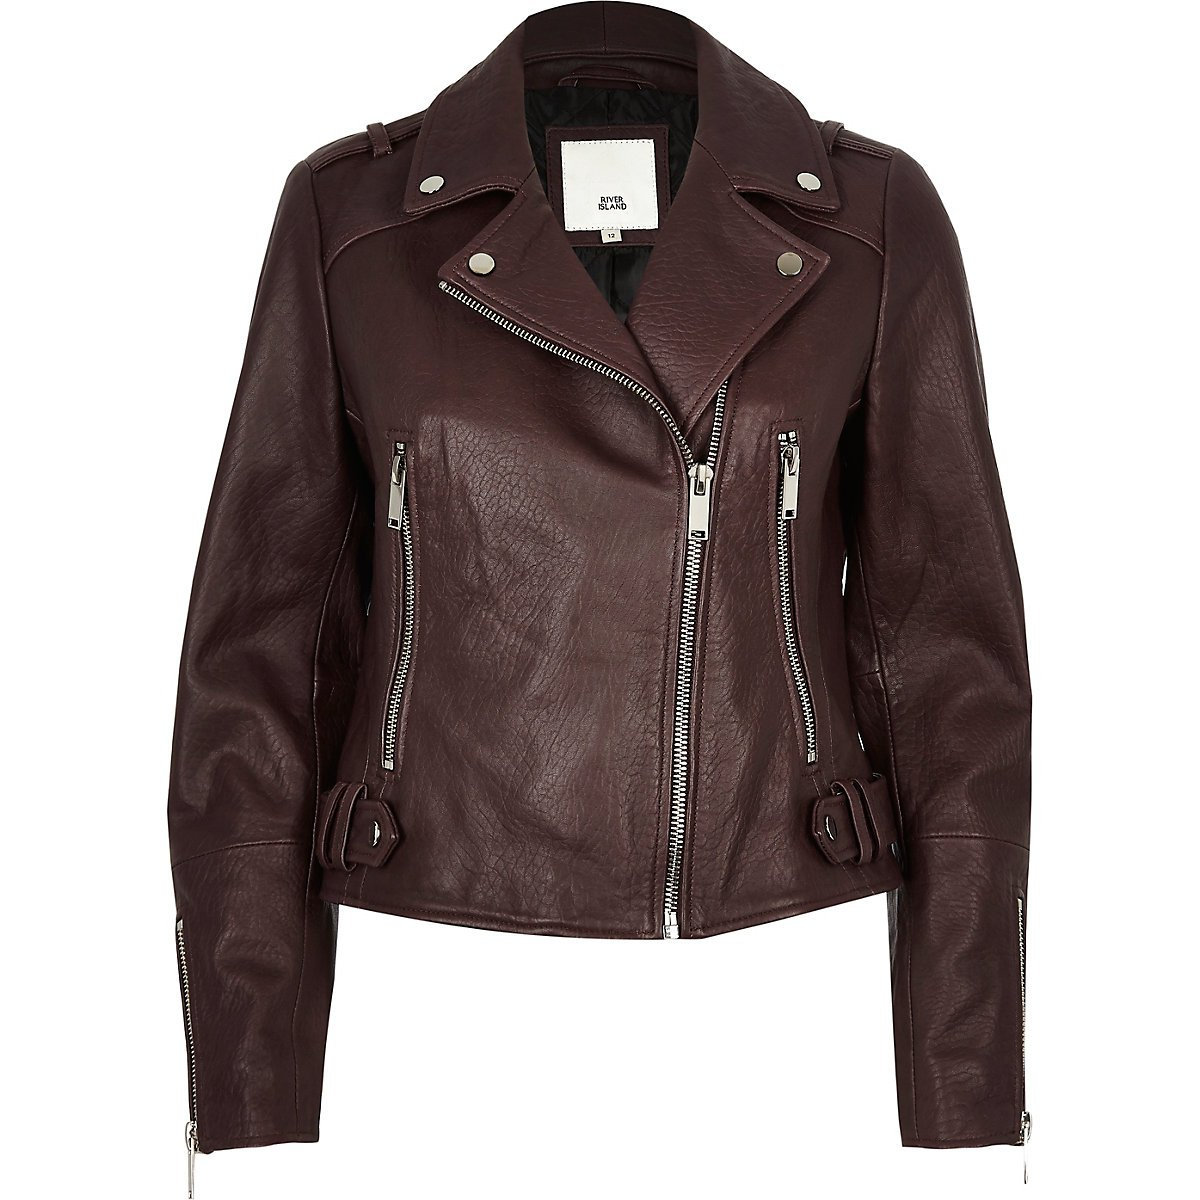 Dark purple leather biker jacket - Jackets - Coats & Jackets - women